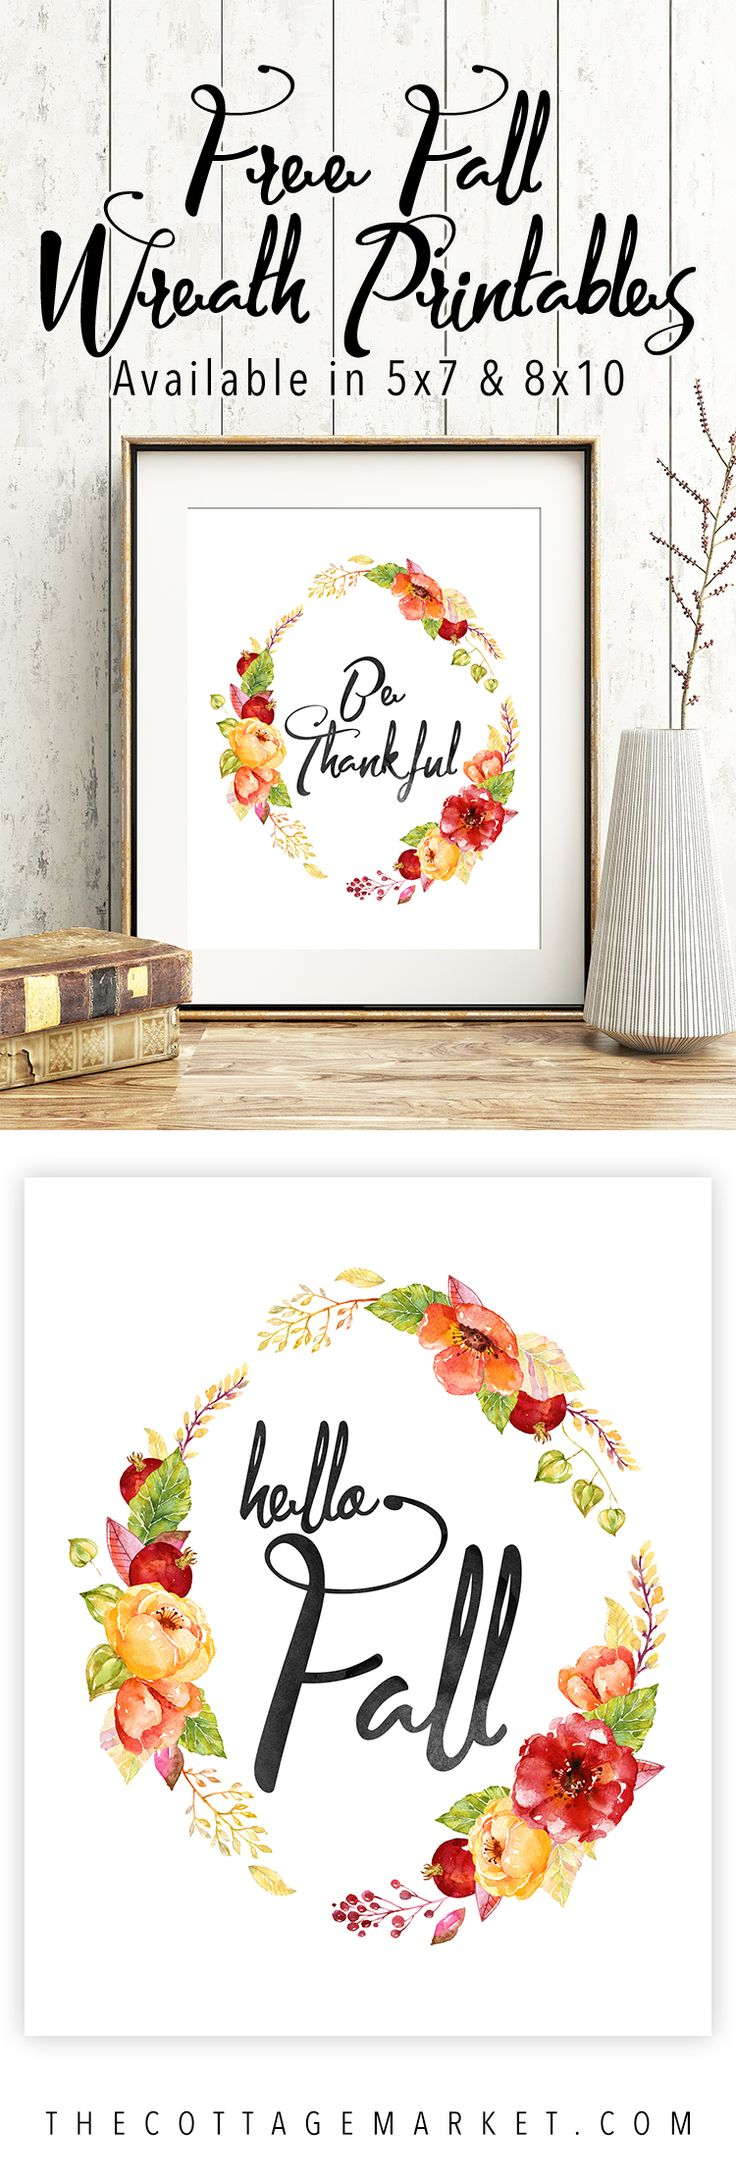 Free Printables for Fall - The Cottage Market